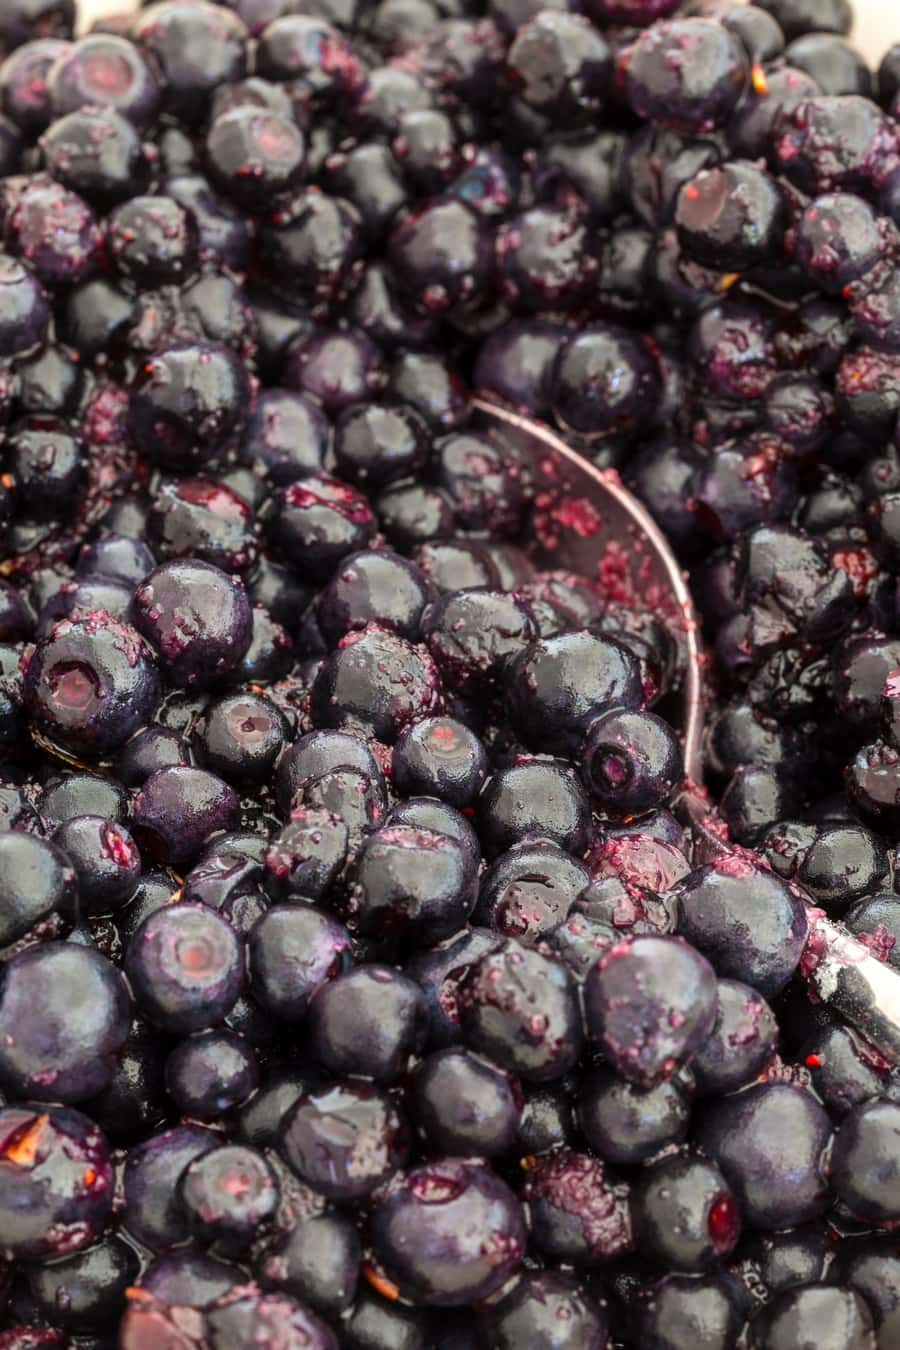 Closeup of blueberries mixed with sugar and potato starch.